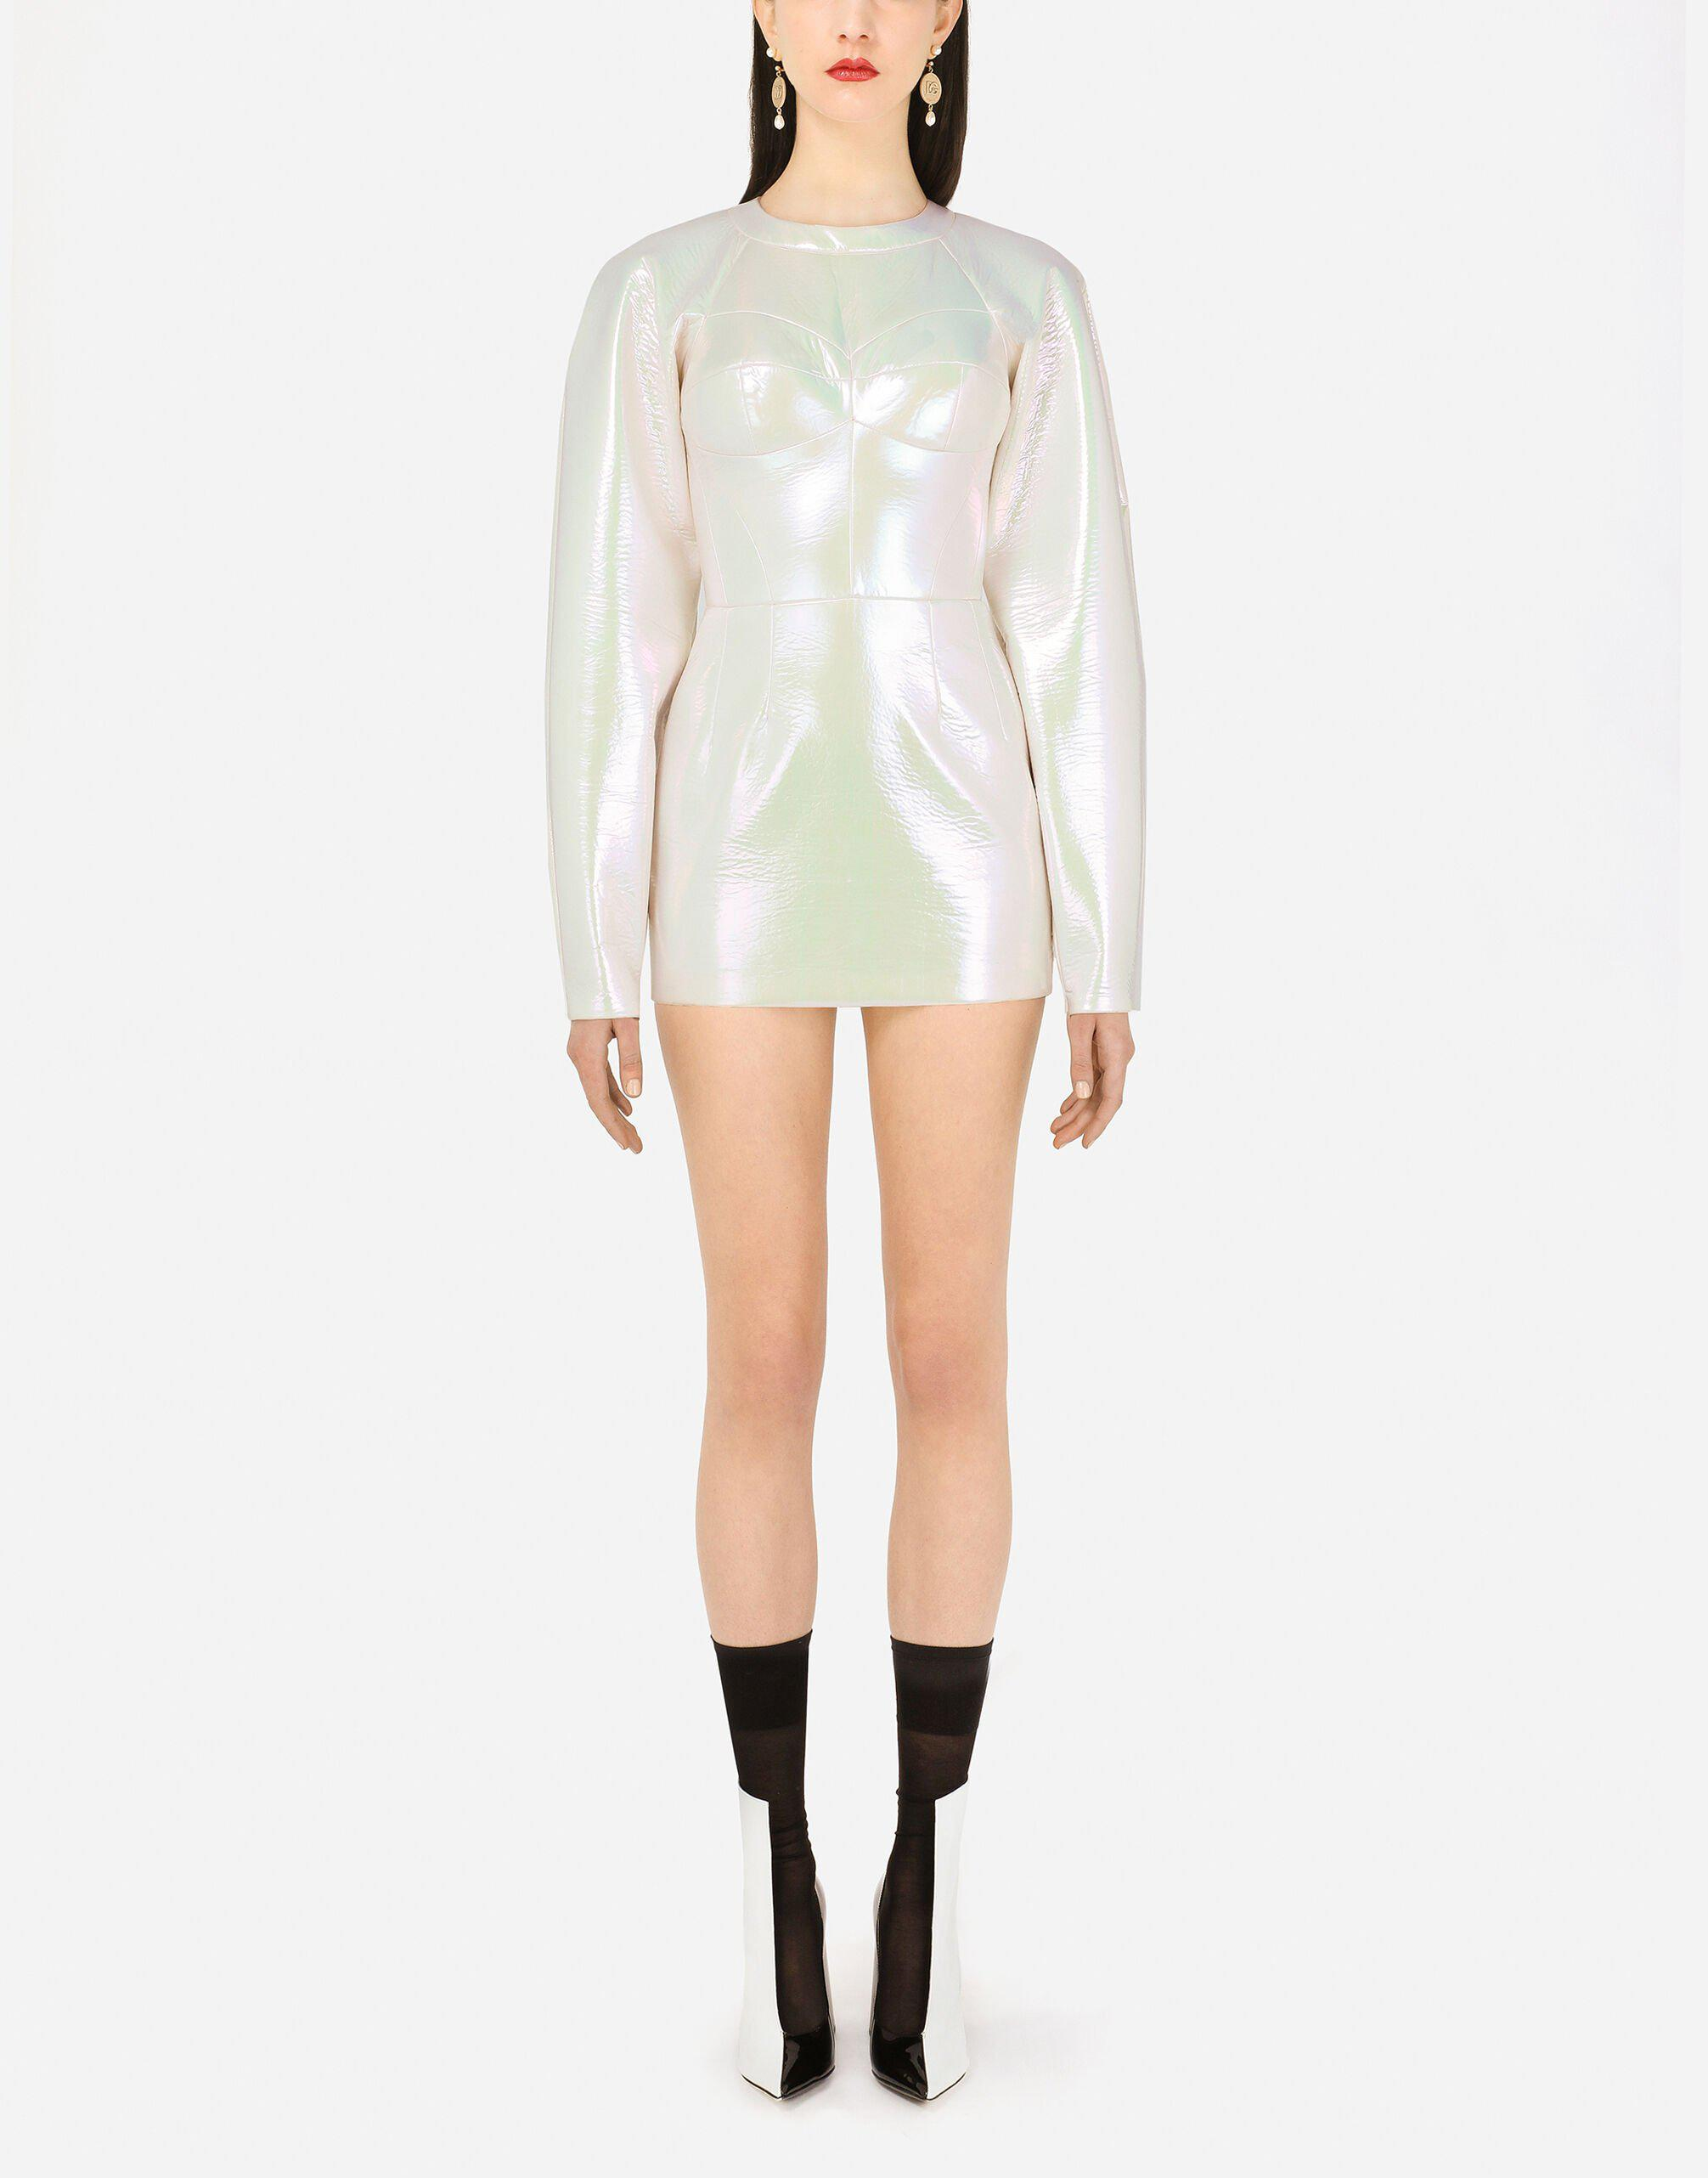 Holographic-effect technical jersey minidress